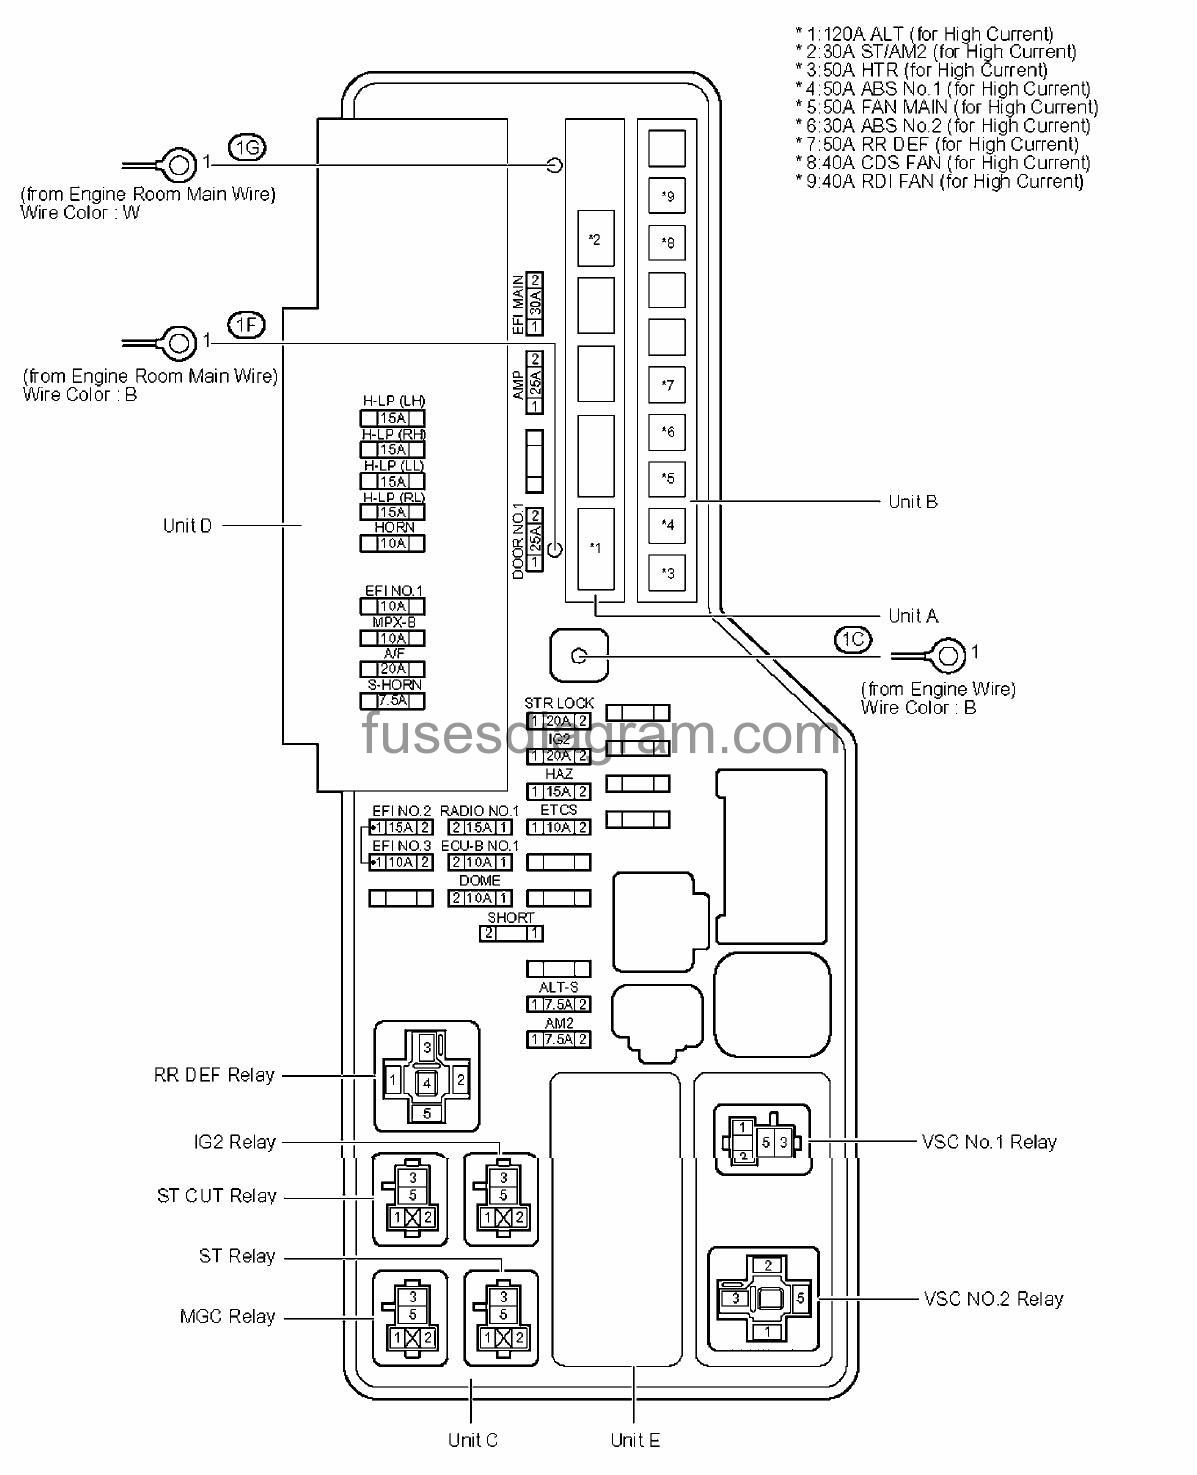 2000 Sienna Fuse Diagram Books Of Wiring Toyota Audio Camry Box Diagrams Rh Cad Fds Co Uk